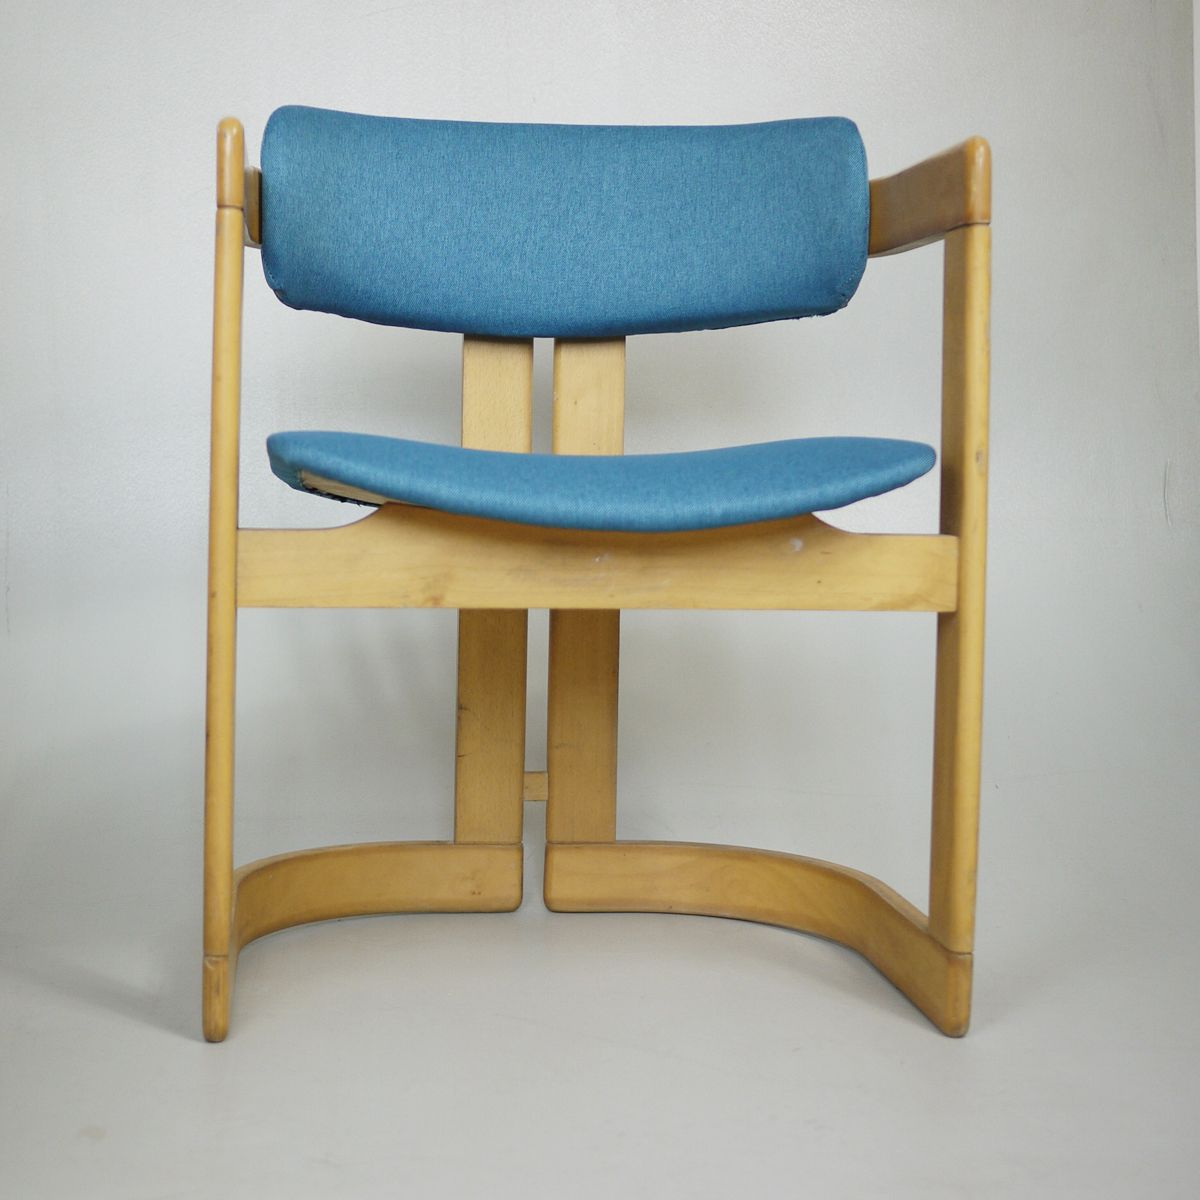 Merveilleux Vintage Wooden Padded Lounge Chair